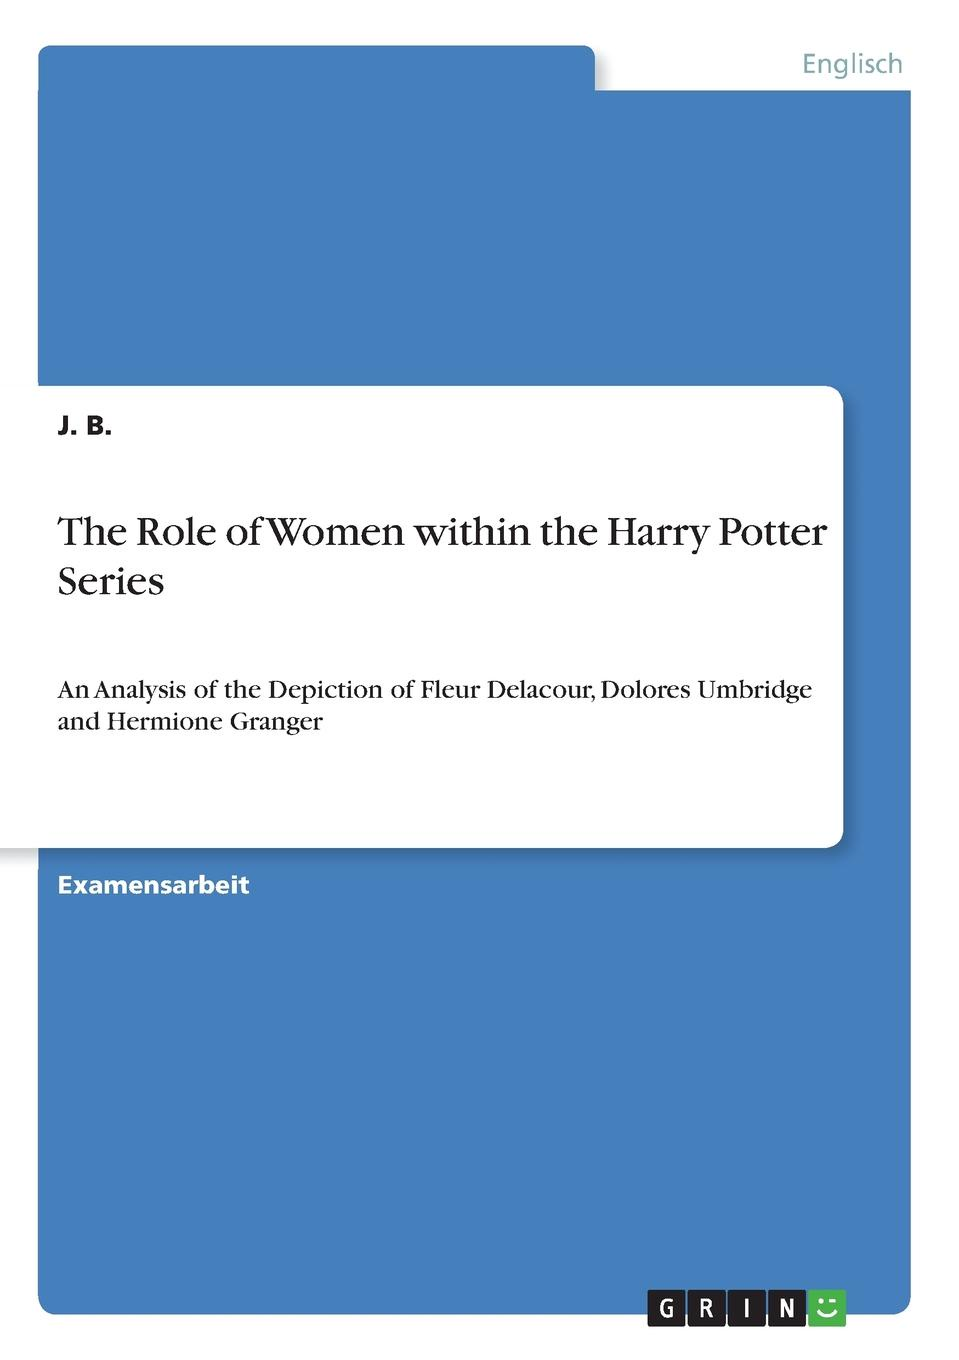 J. B. The Role of Women within the Harry Potter Series